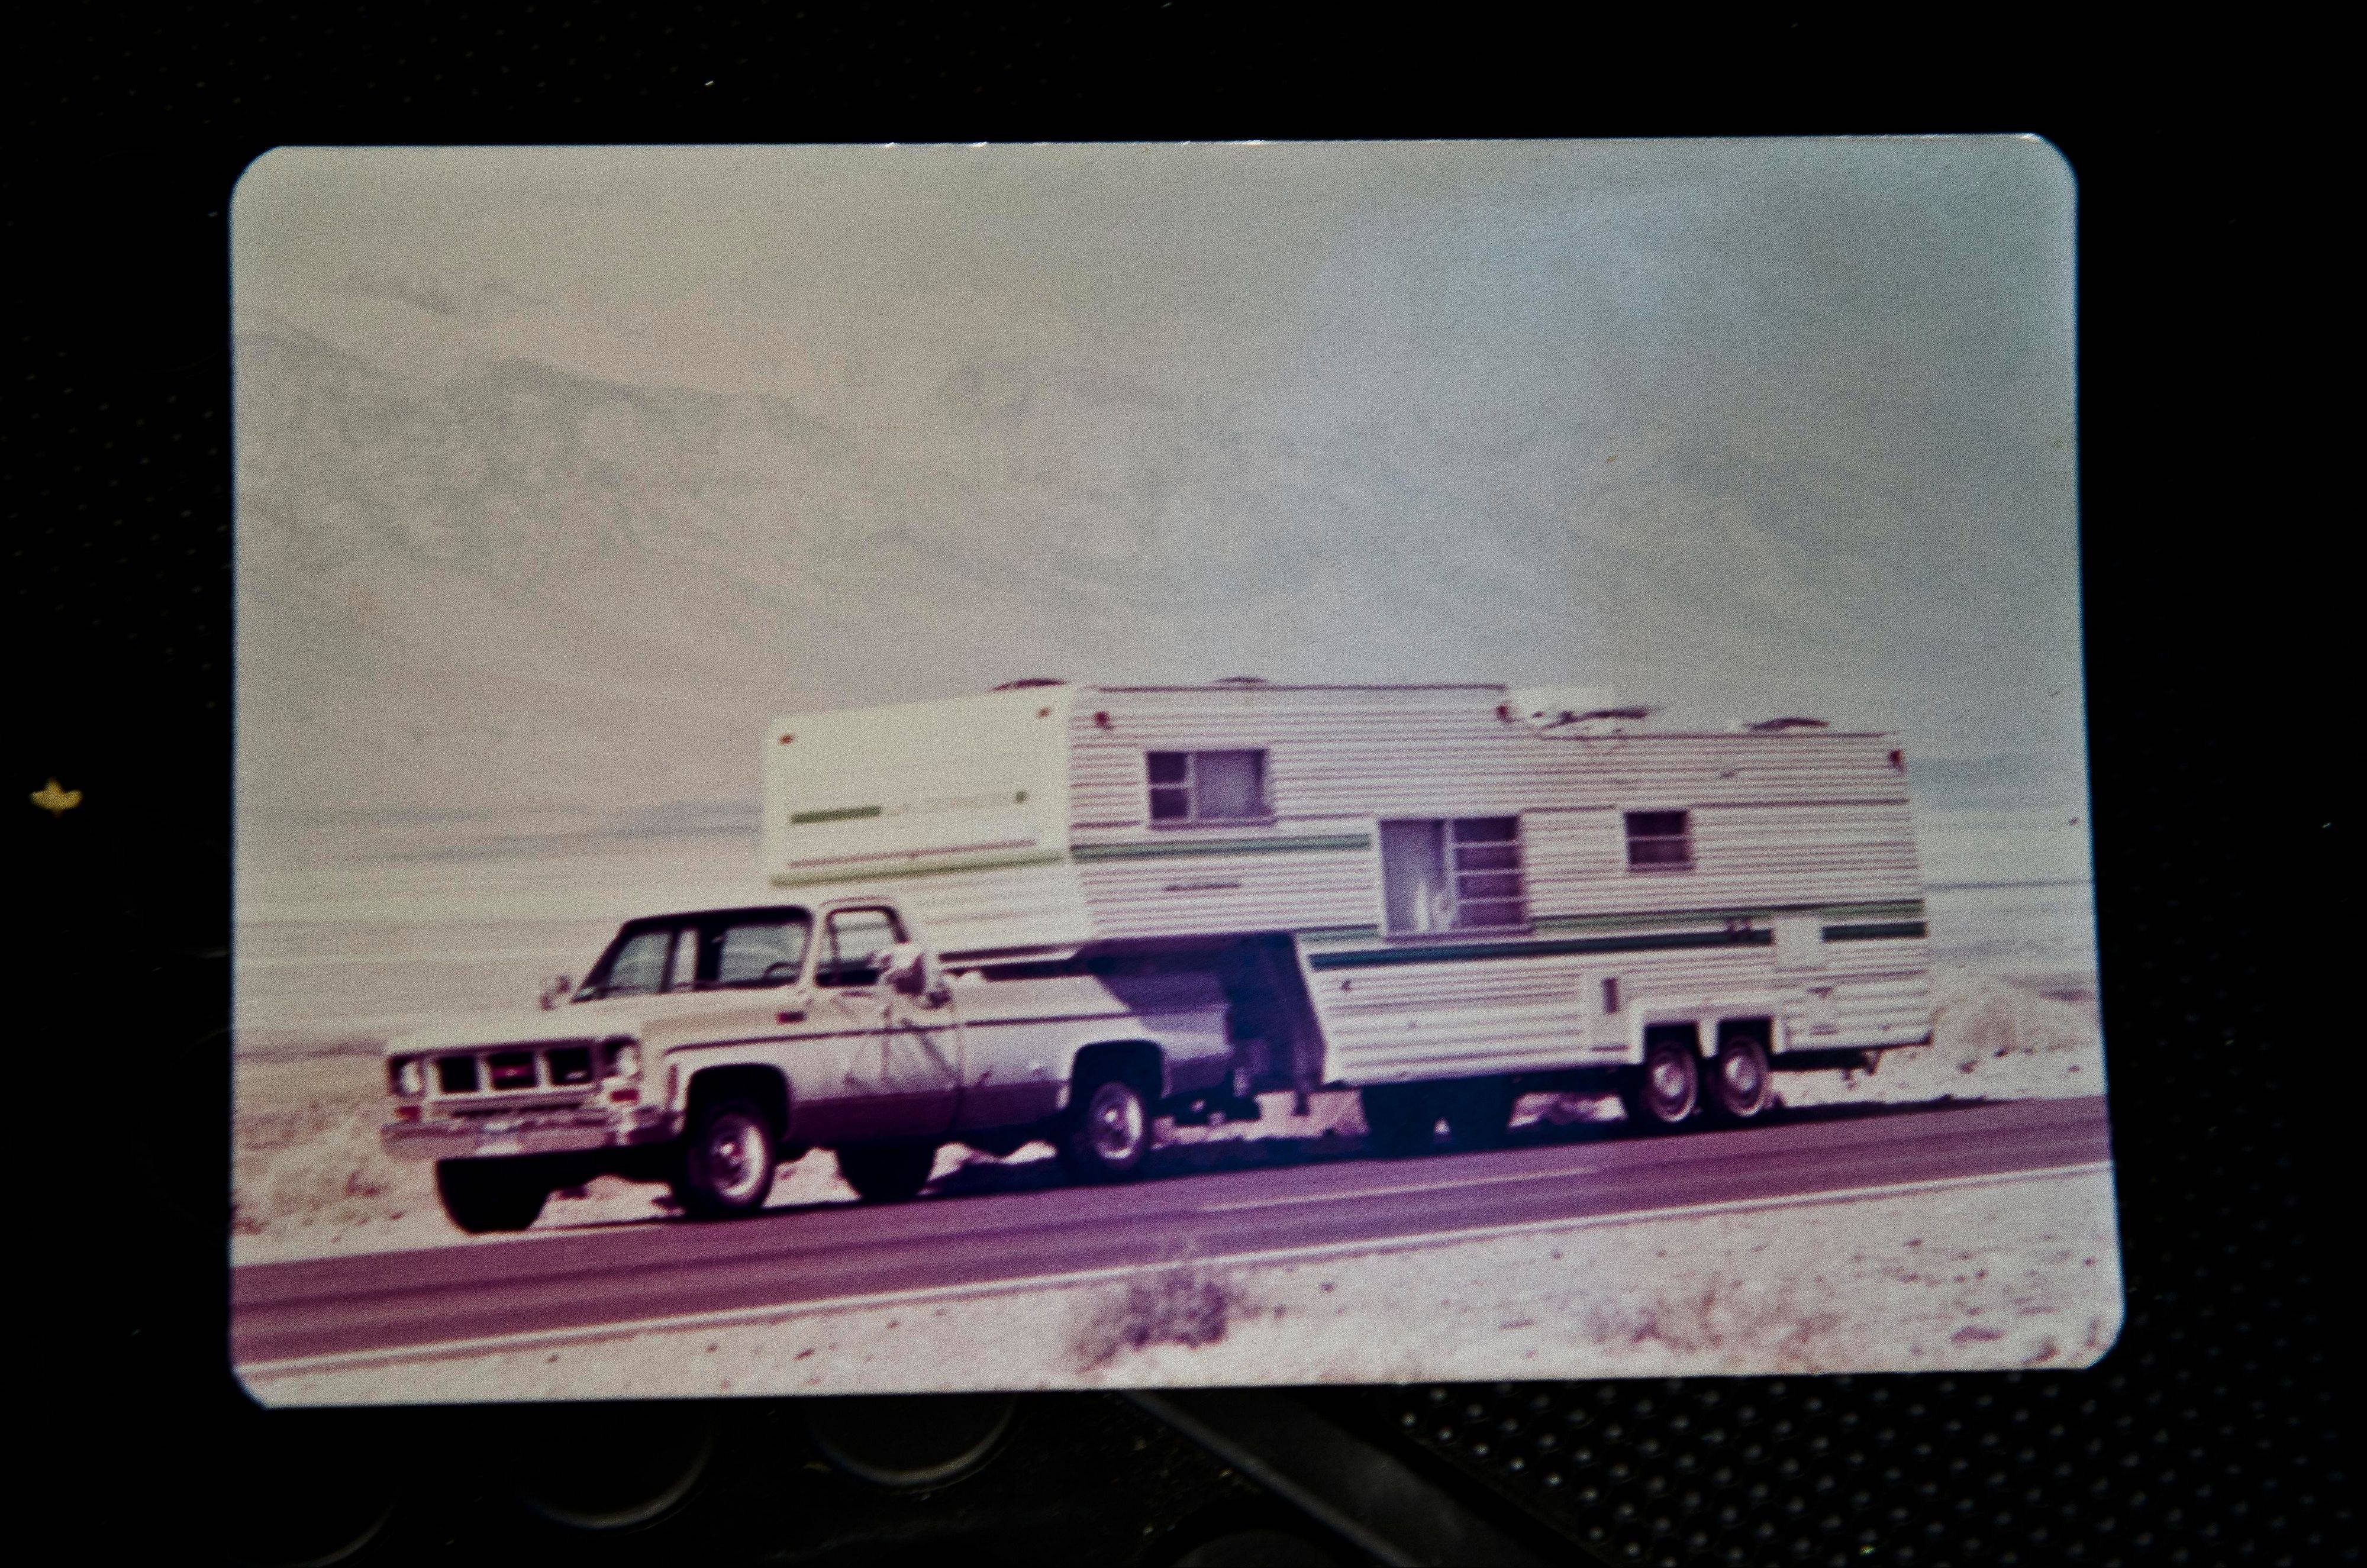 Bjorklund's uncle was an avid traveler who for years would bring his truck and camper on Chicago visits from his home on the West Coast.